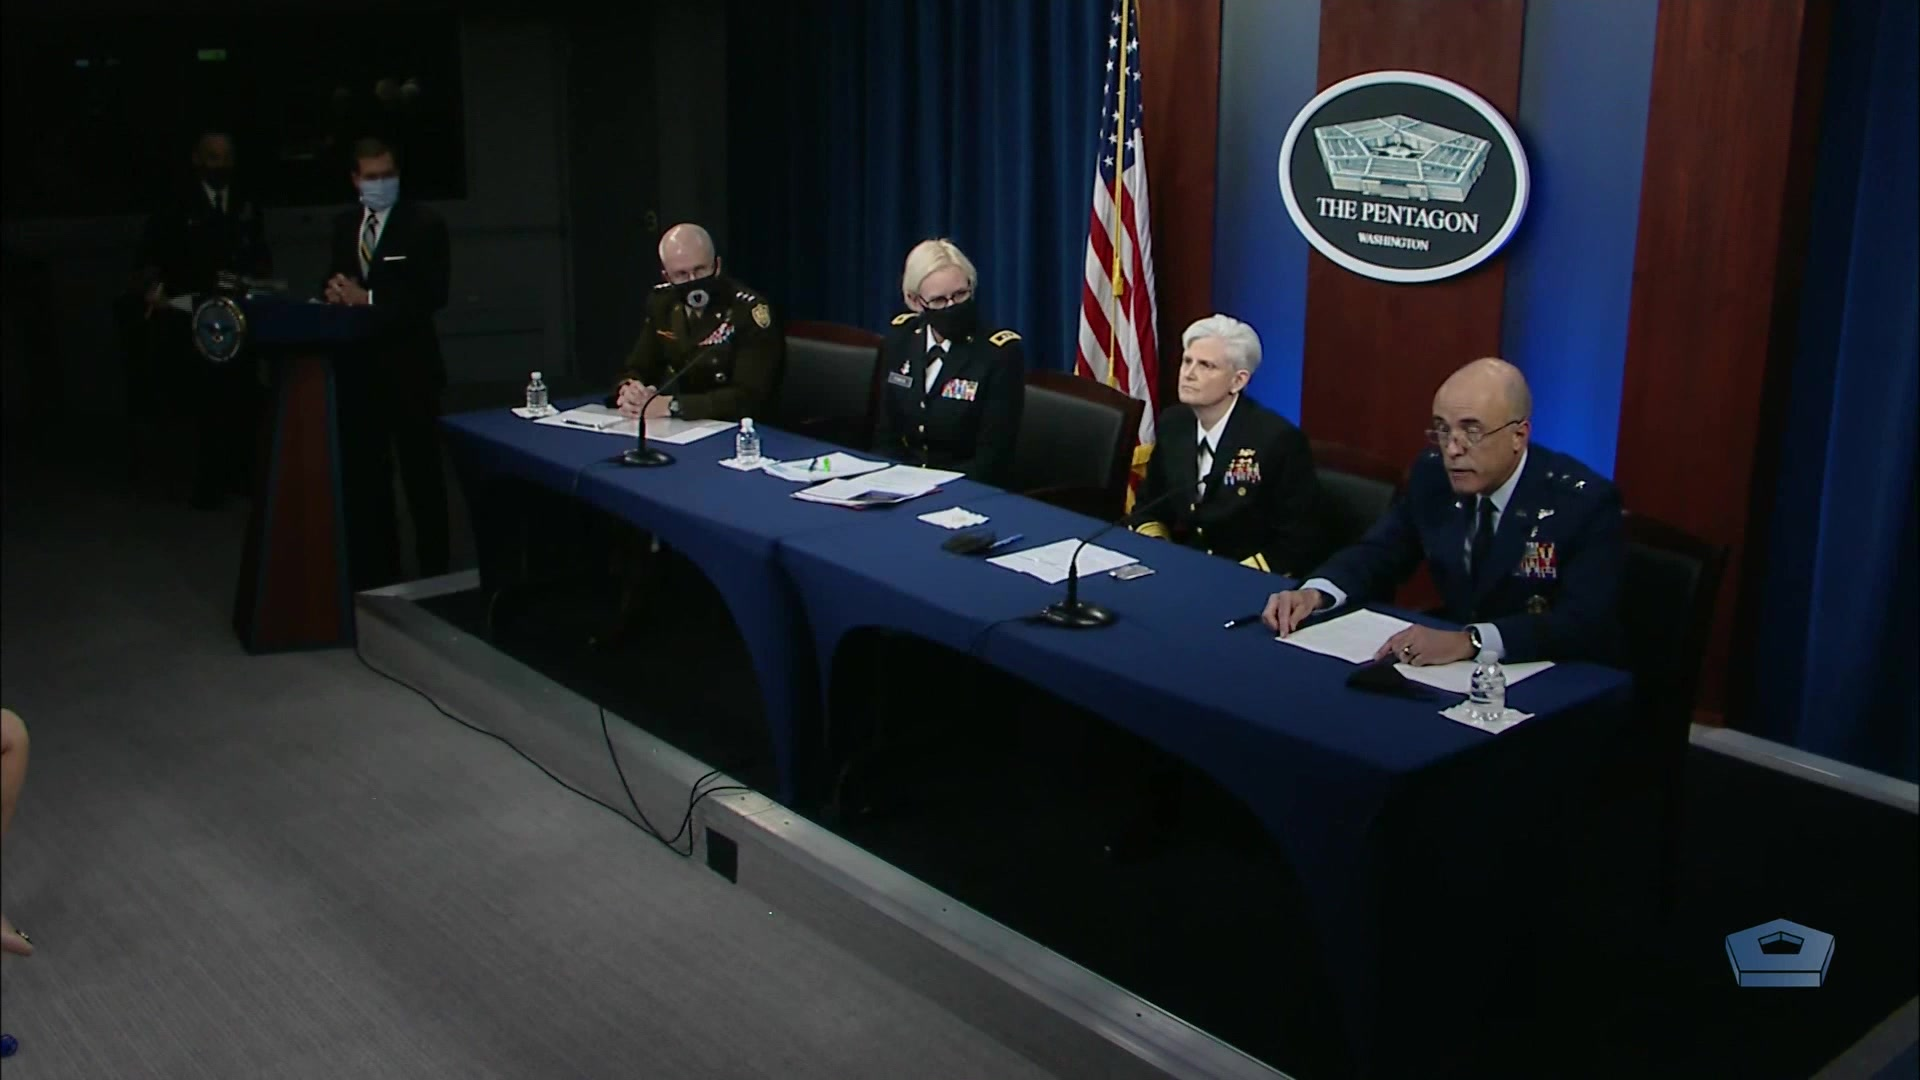 Service members sit at a table as a civilian stands at a lectern beside them.